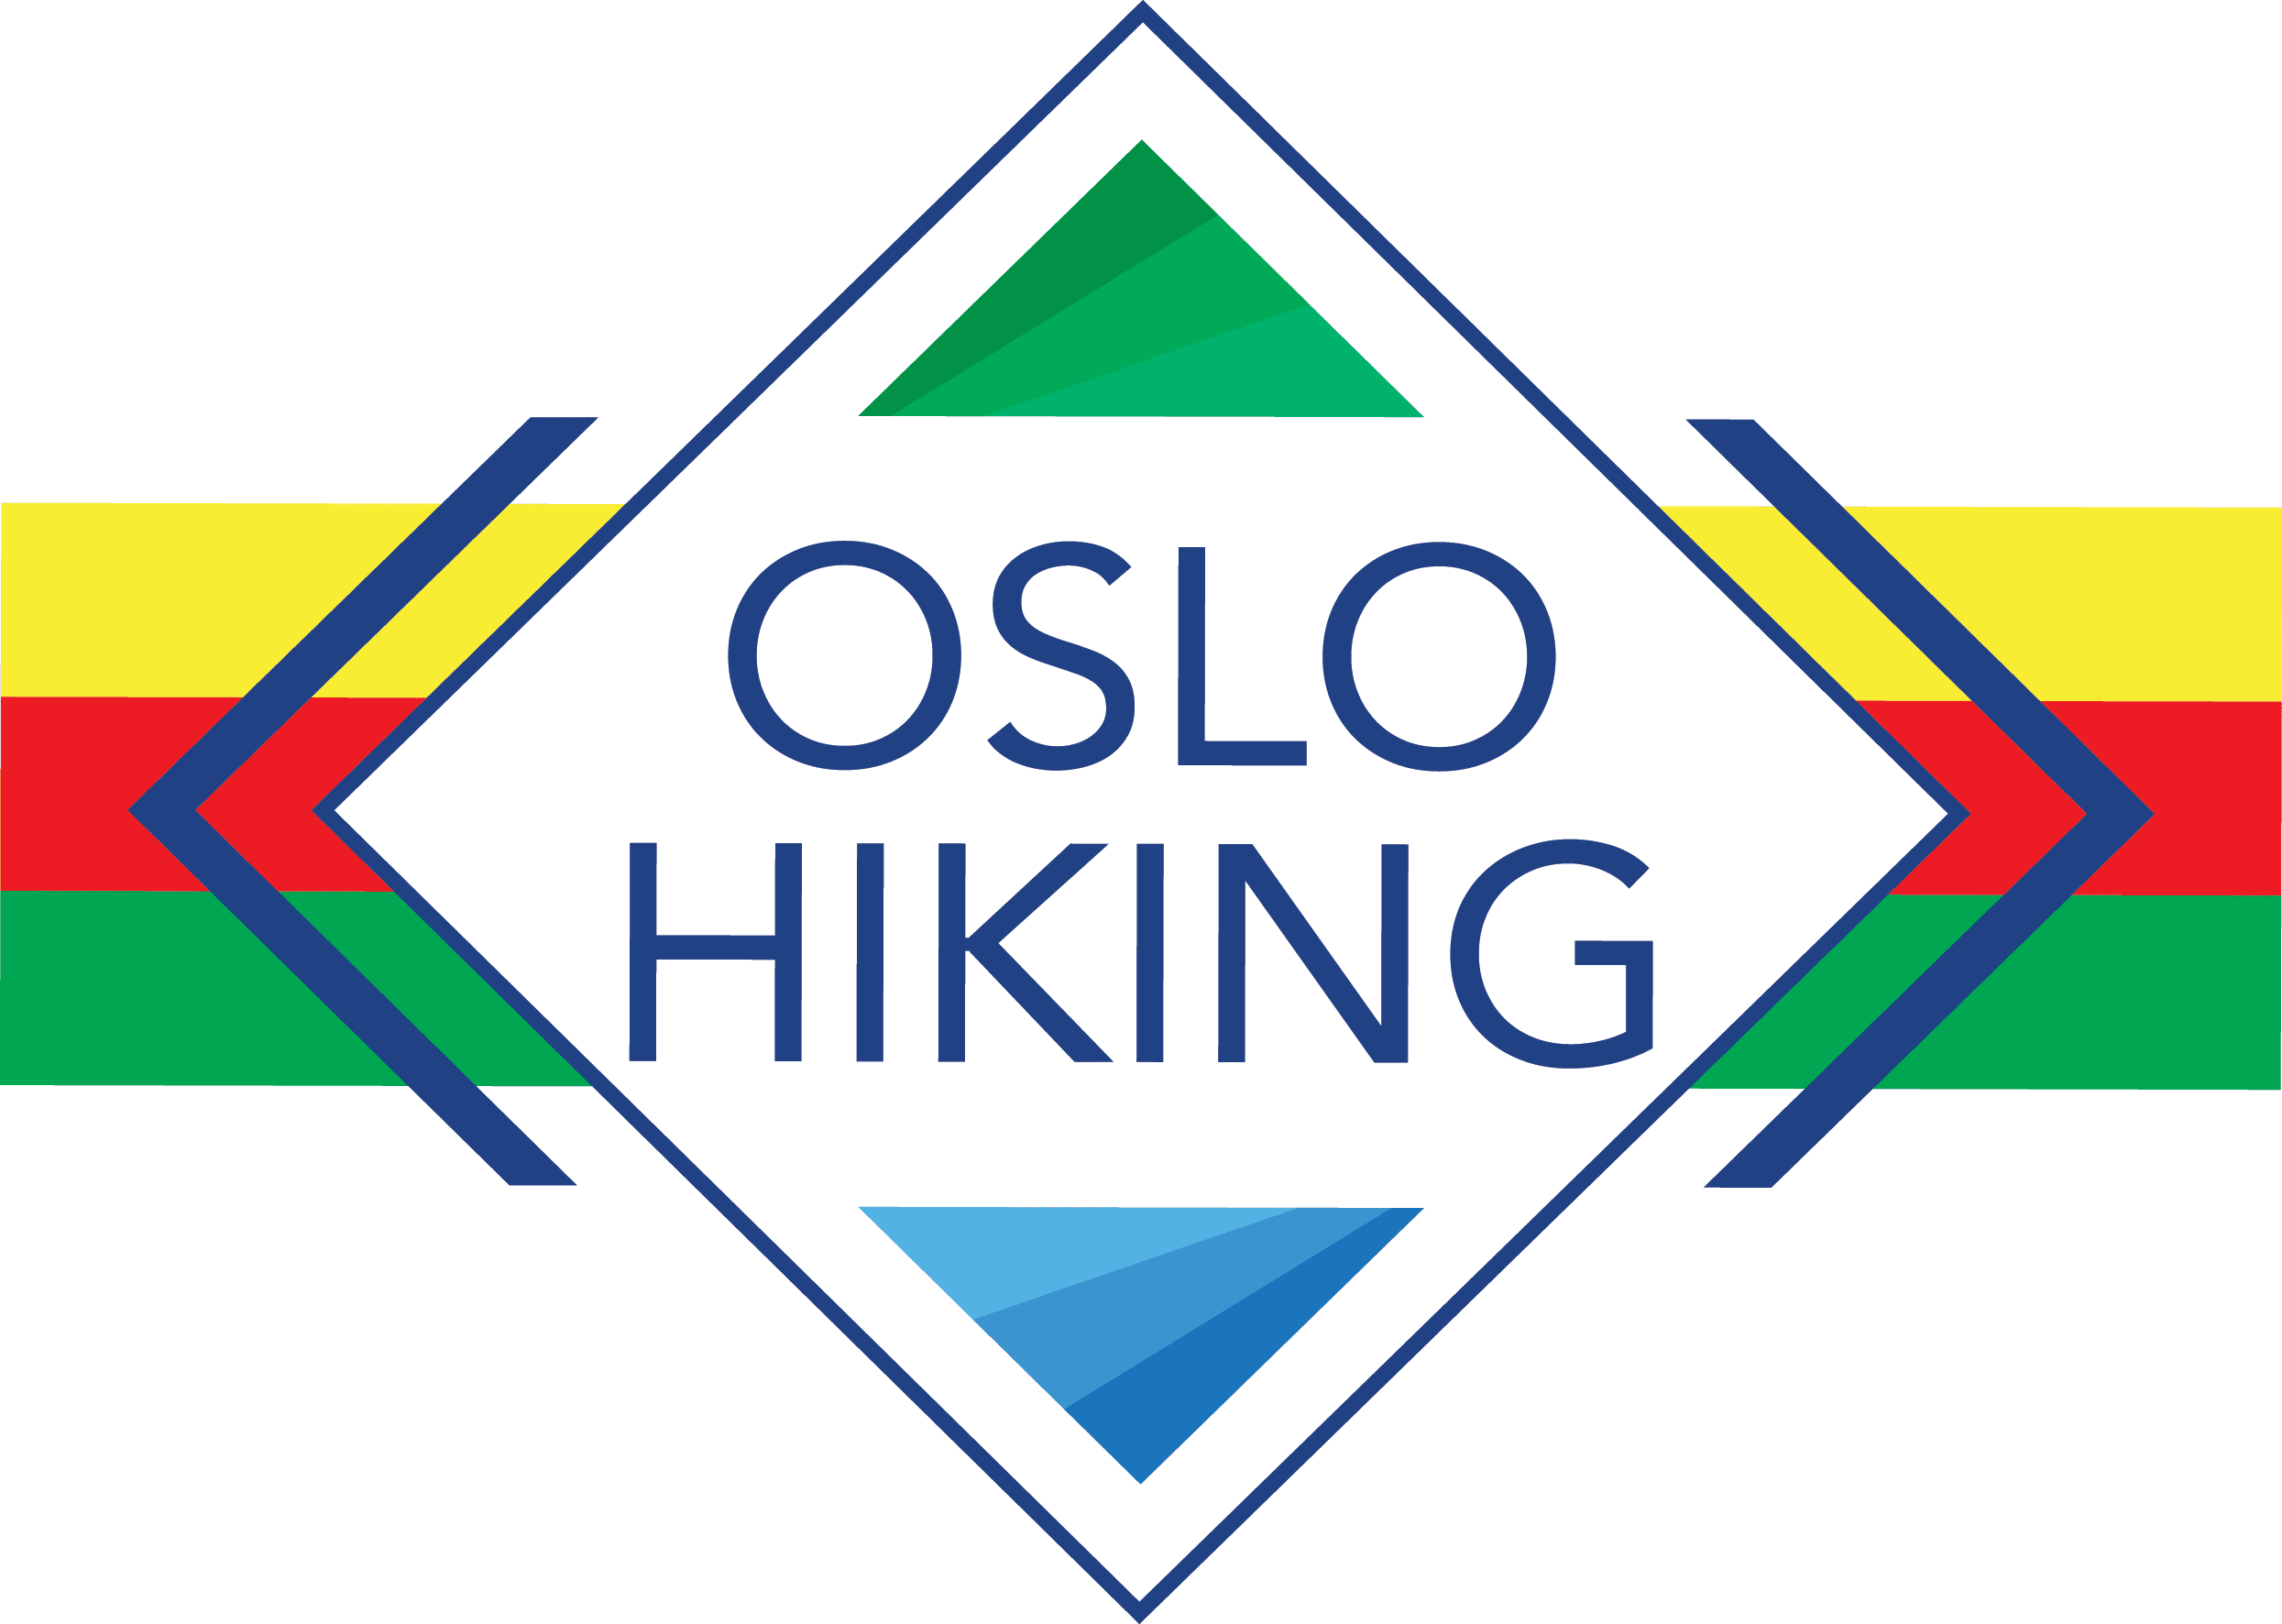 Oslo Hiking logo